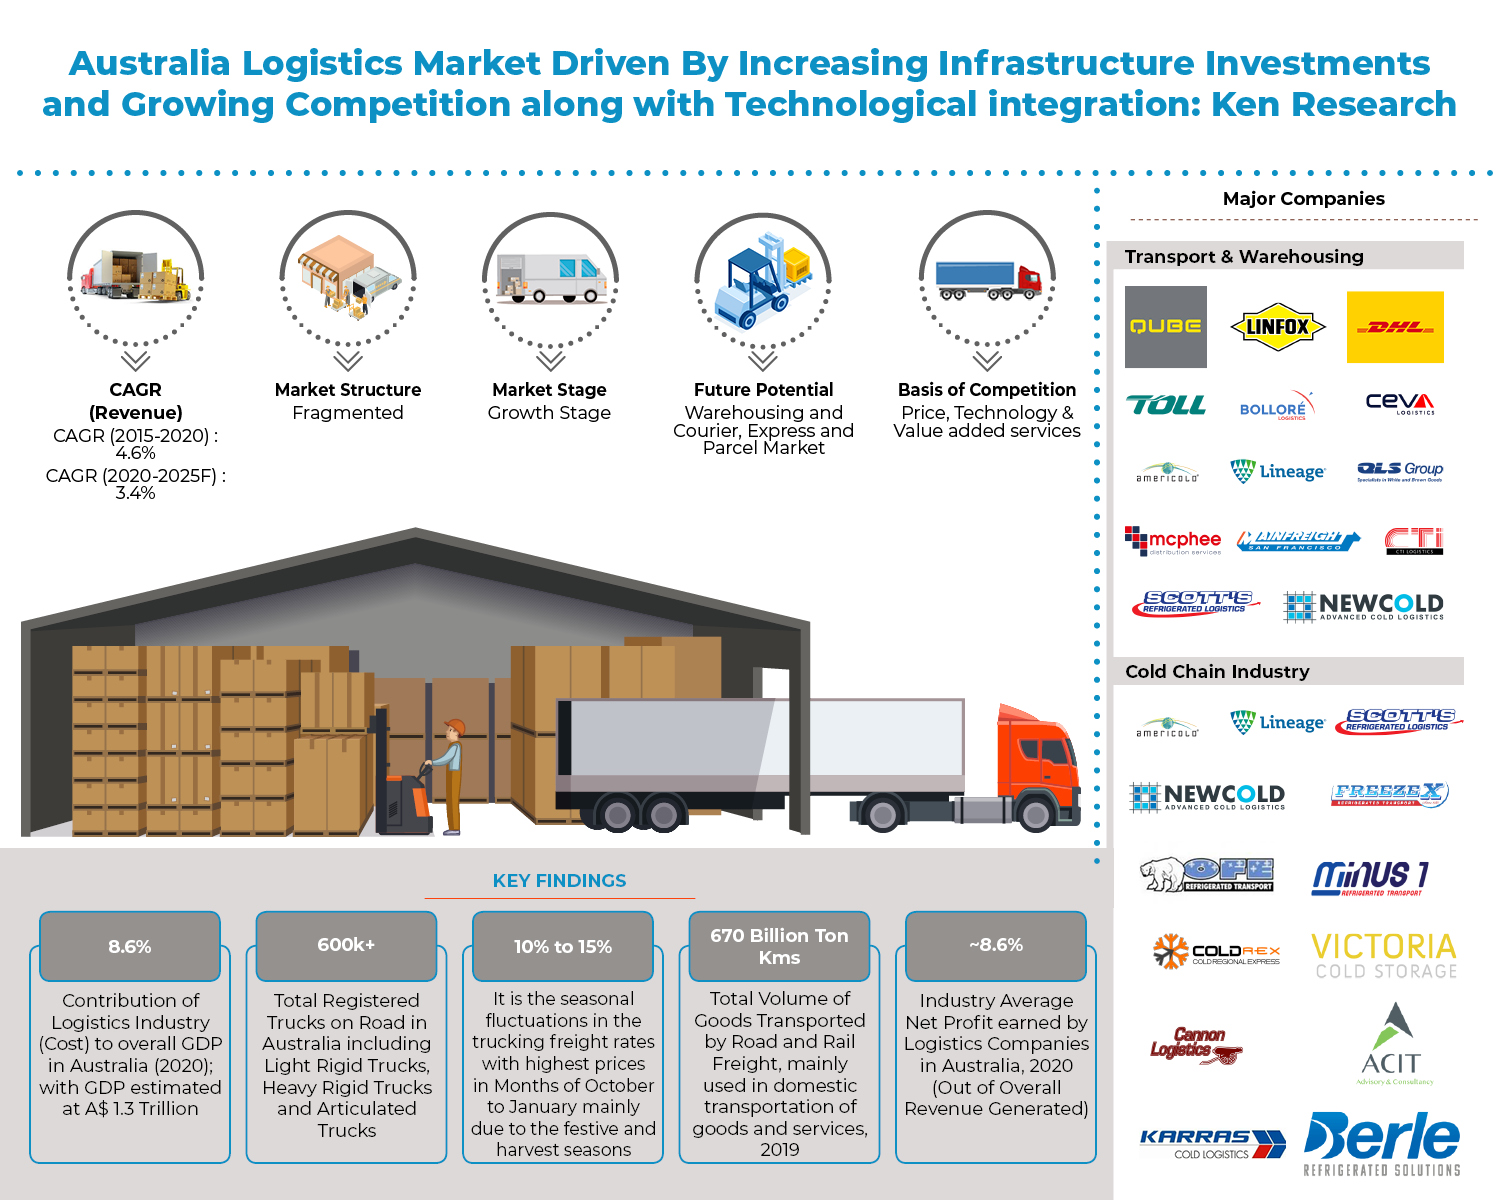 Australia Logistics Market Outlook to 2025 - Revenue generated from Australian Logistics Industry is expected to witness a CAGR of 3.4% during 2020-2025: Ken Research